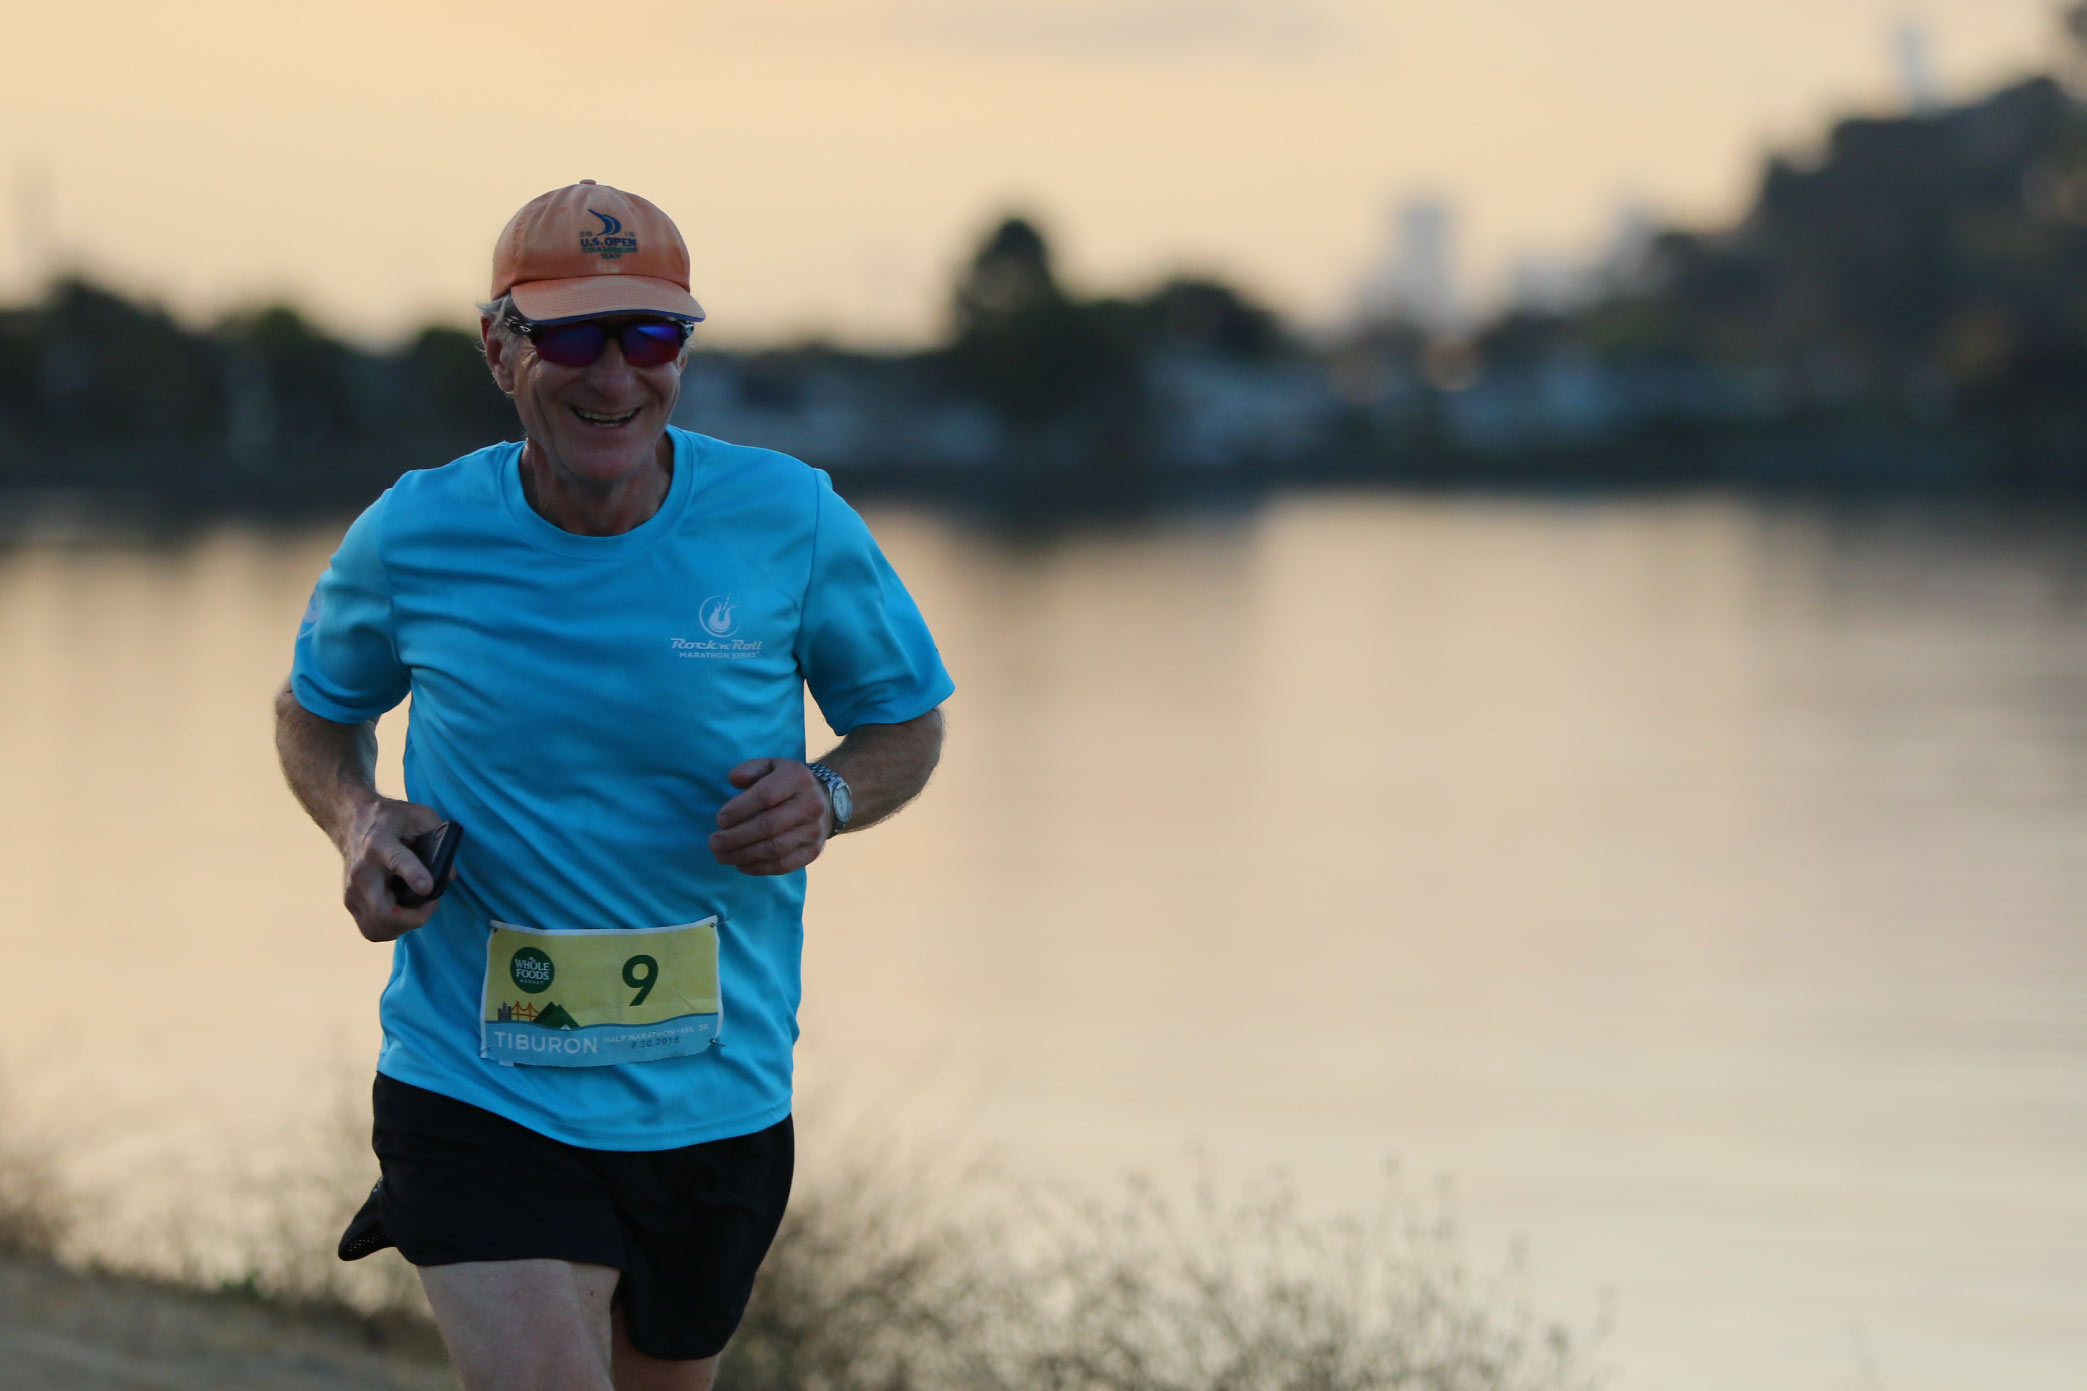 Whole Foods Market Tiburon Half Marathon, 5k & 10k - September 29th, 2019 - Register NowTiburon, CA